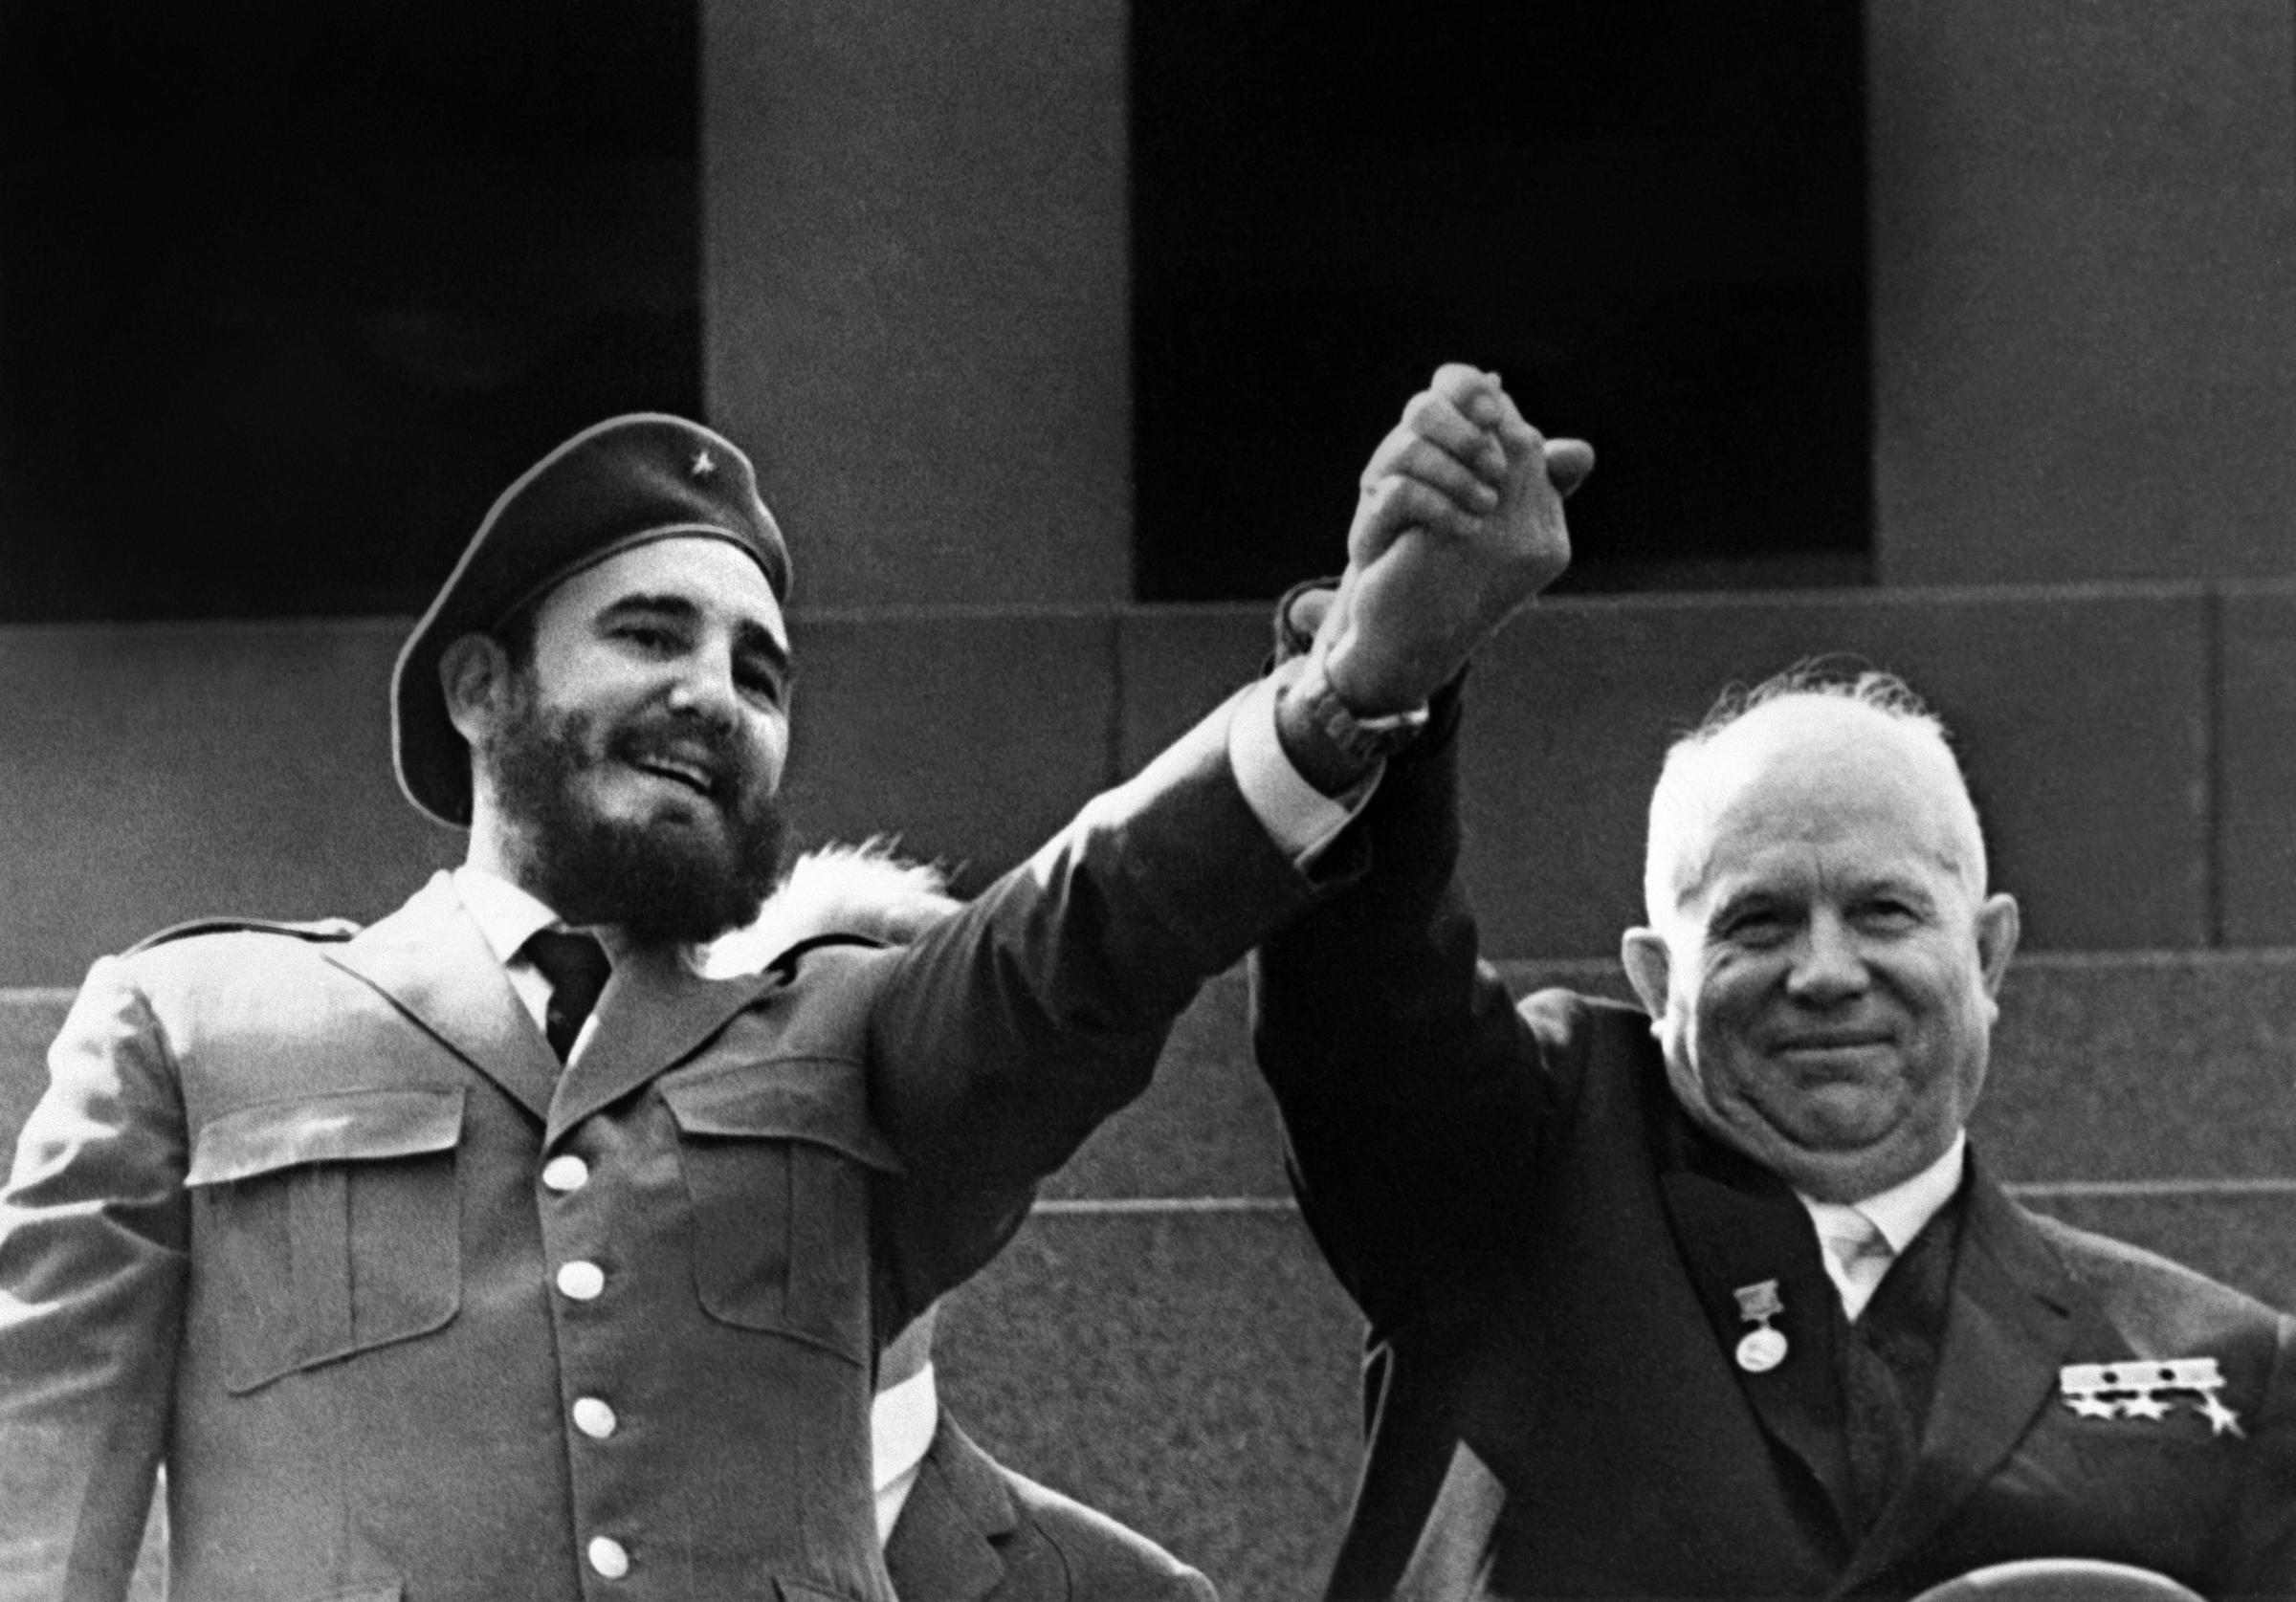 Castro (left) is shown in file photo dated May 1963 holding the hand of Soviet leader Nikita Khrushchev during a four-week official visit to Moscow. Castro resigned on Feb. 19, 2008 as president and commander in chief of Cuba in a message published in the online version of the official daily Granma.